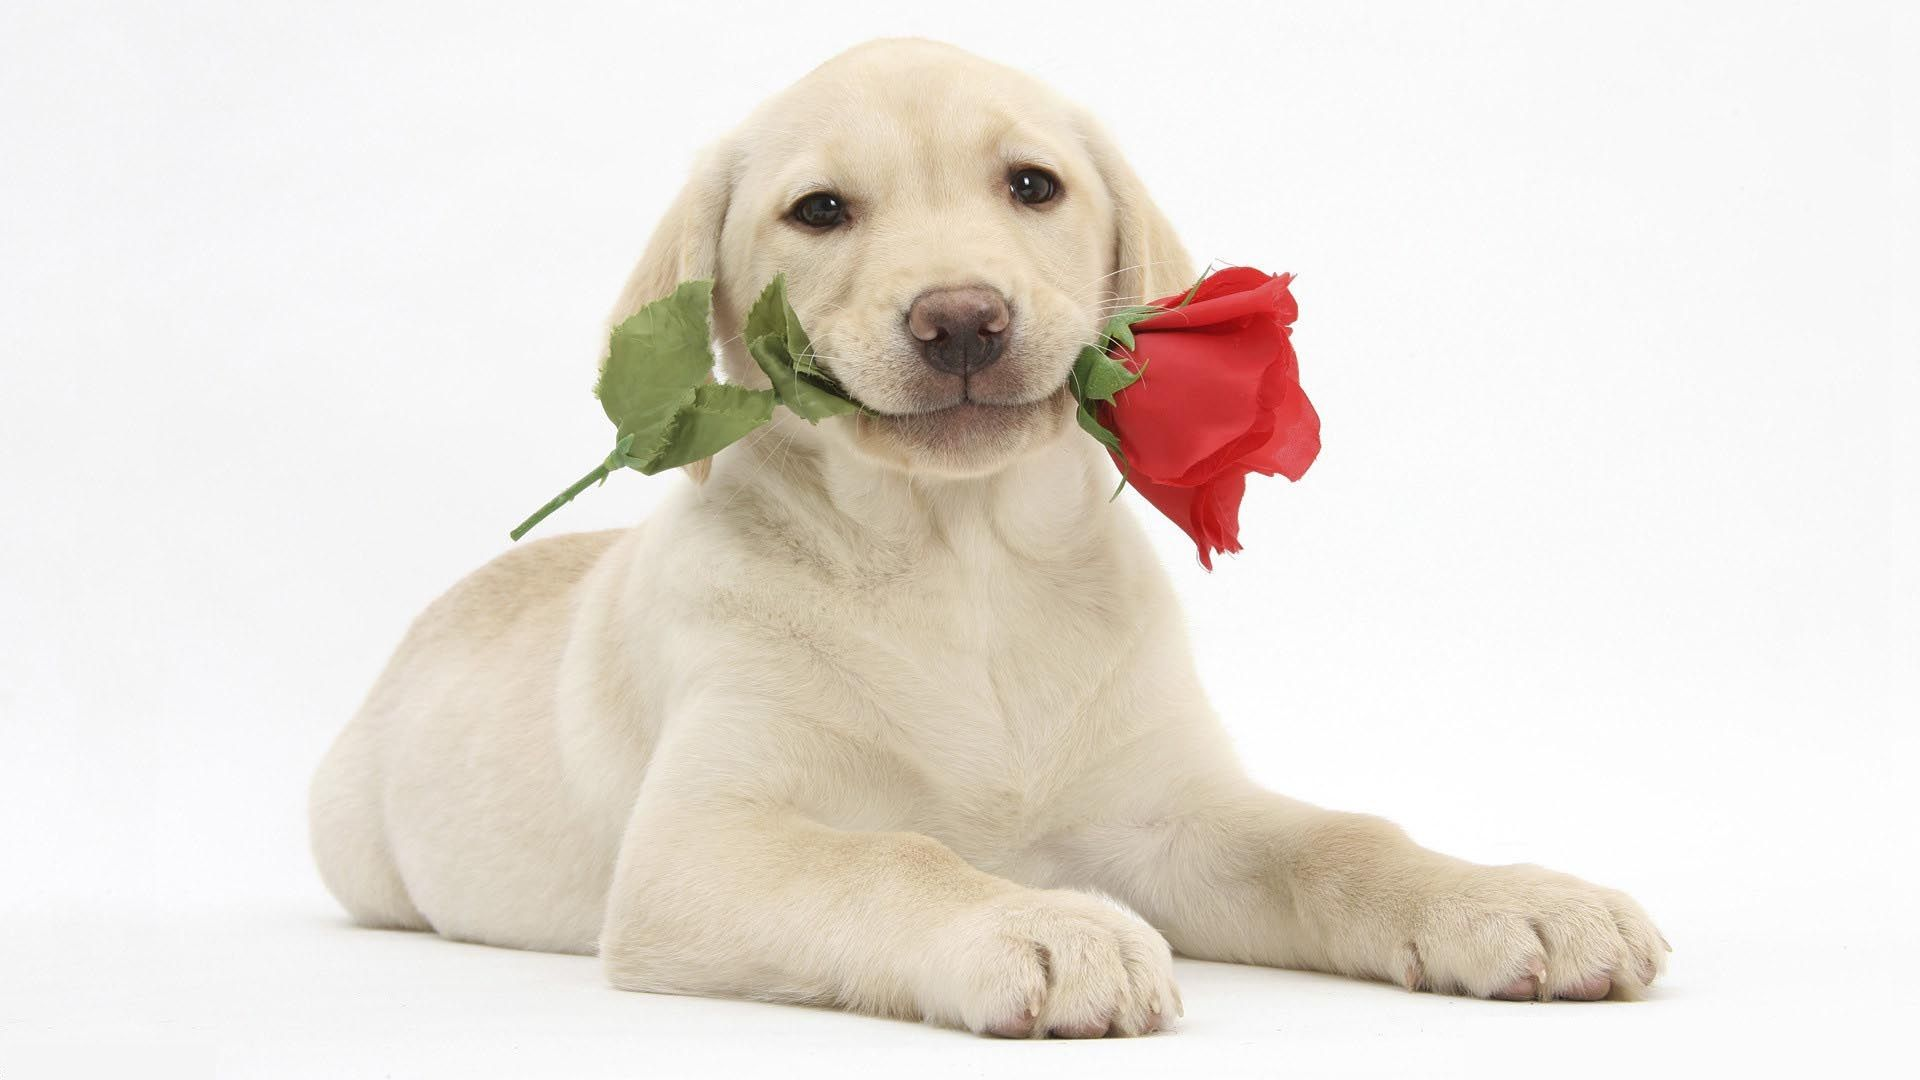 Cute Dog And Rose In Mouth Amazing Hd Wallpapers Rocks Labrador Retriever Puppies Yellow Labrador Retriever Labrador